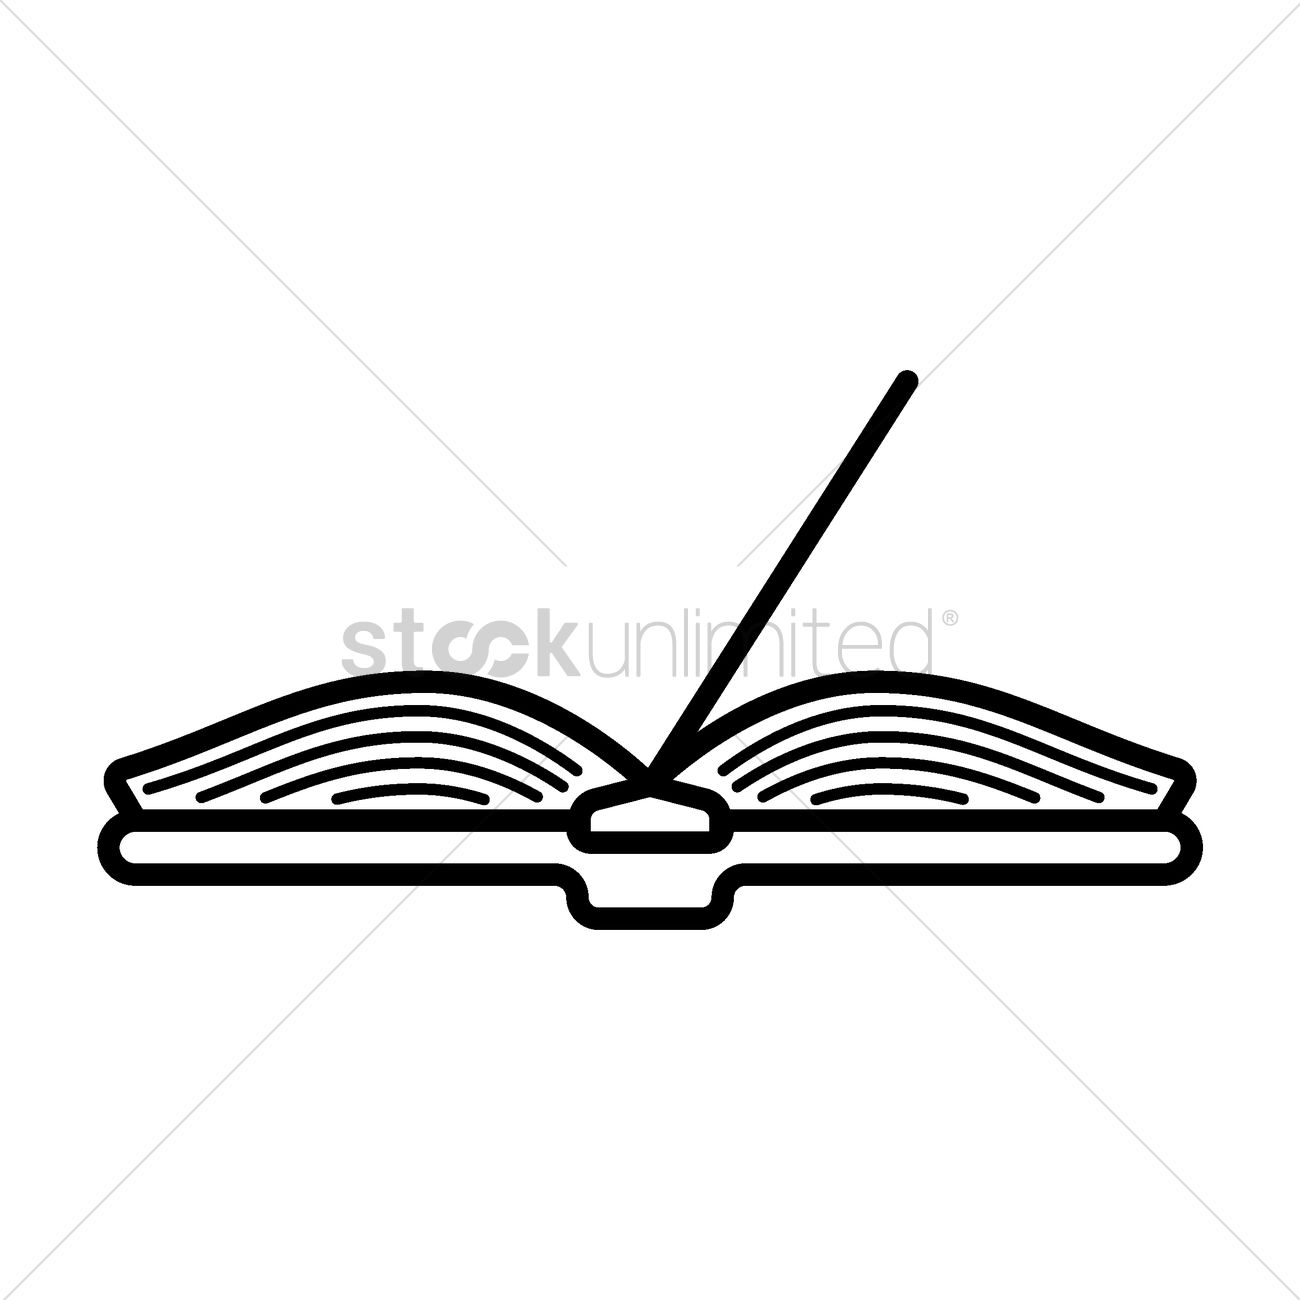 open book vector image 1578000 stockunlimited